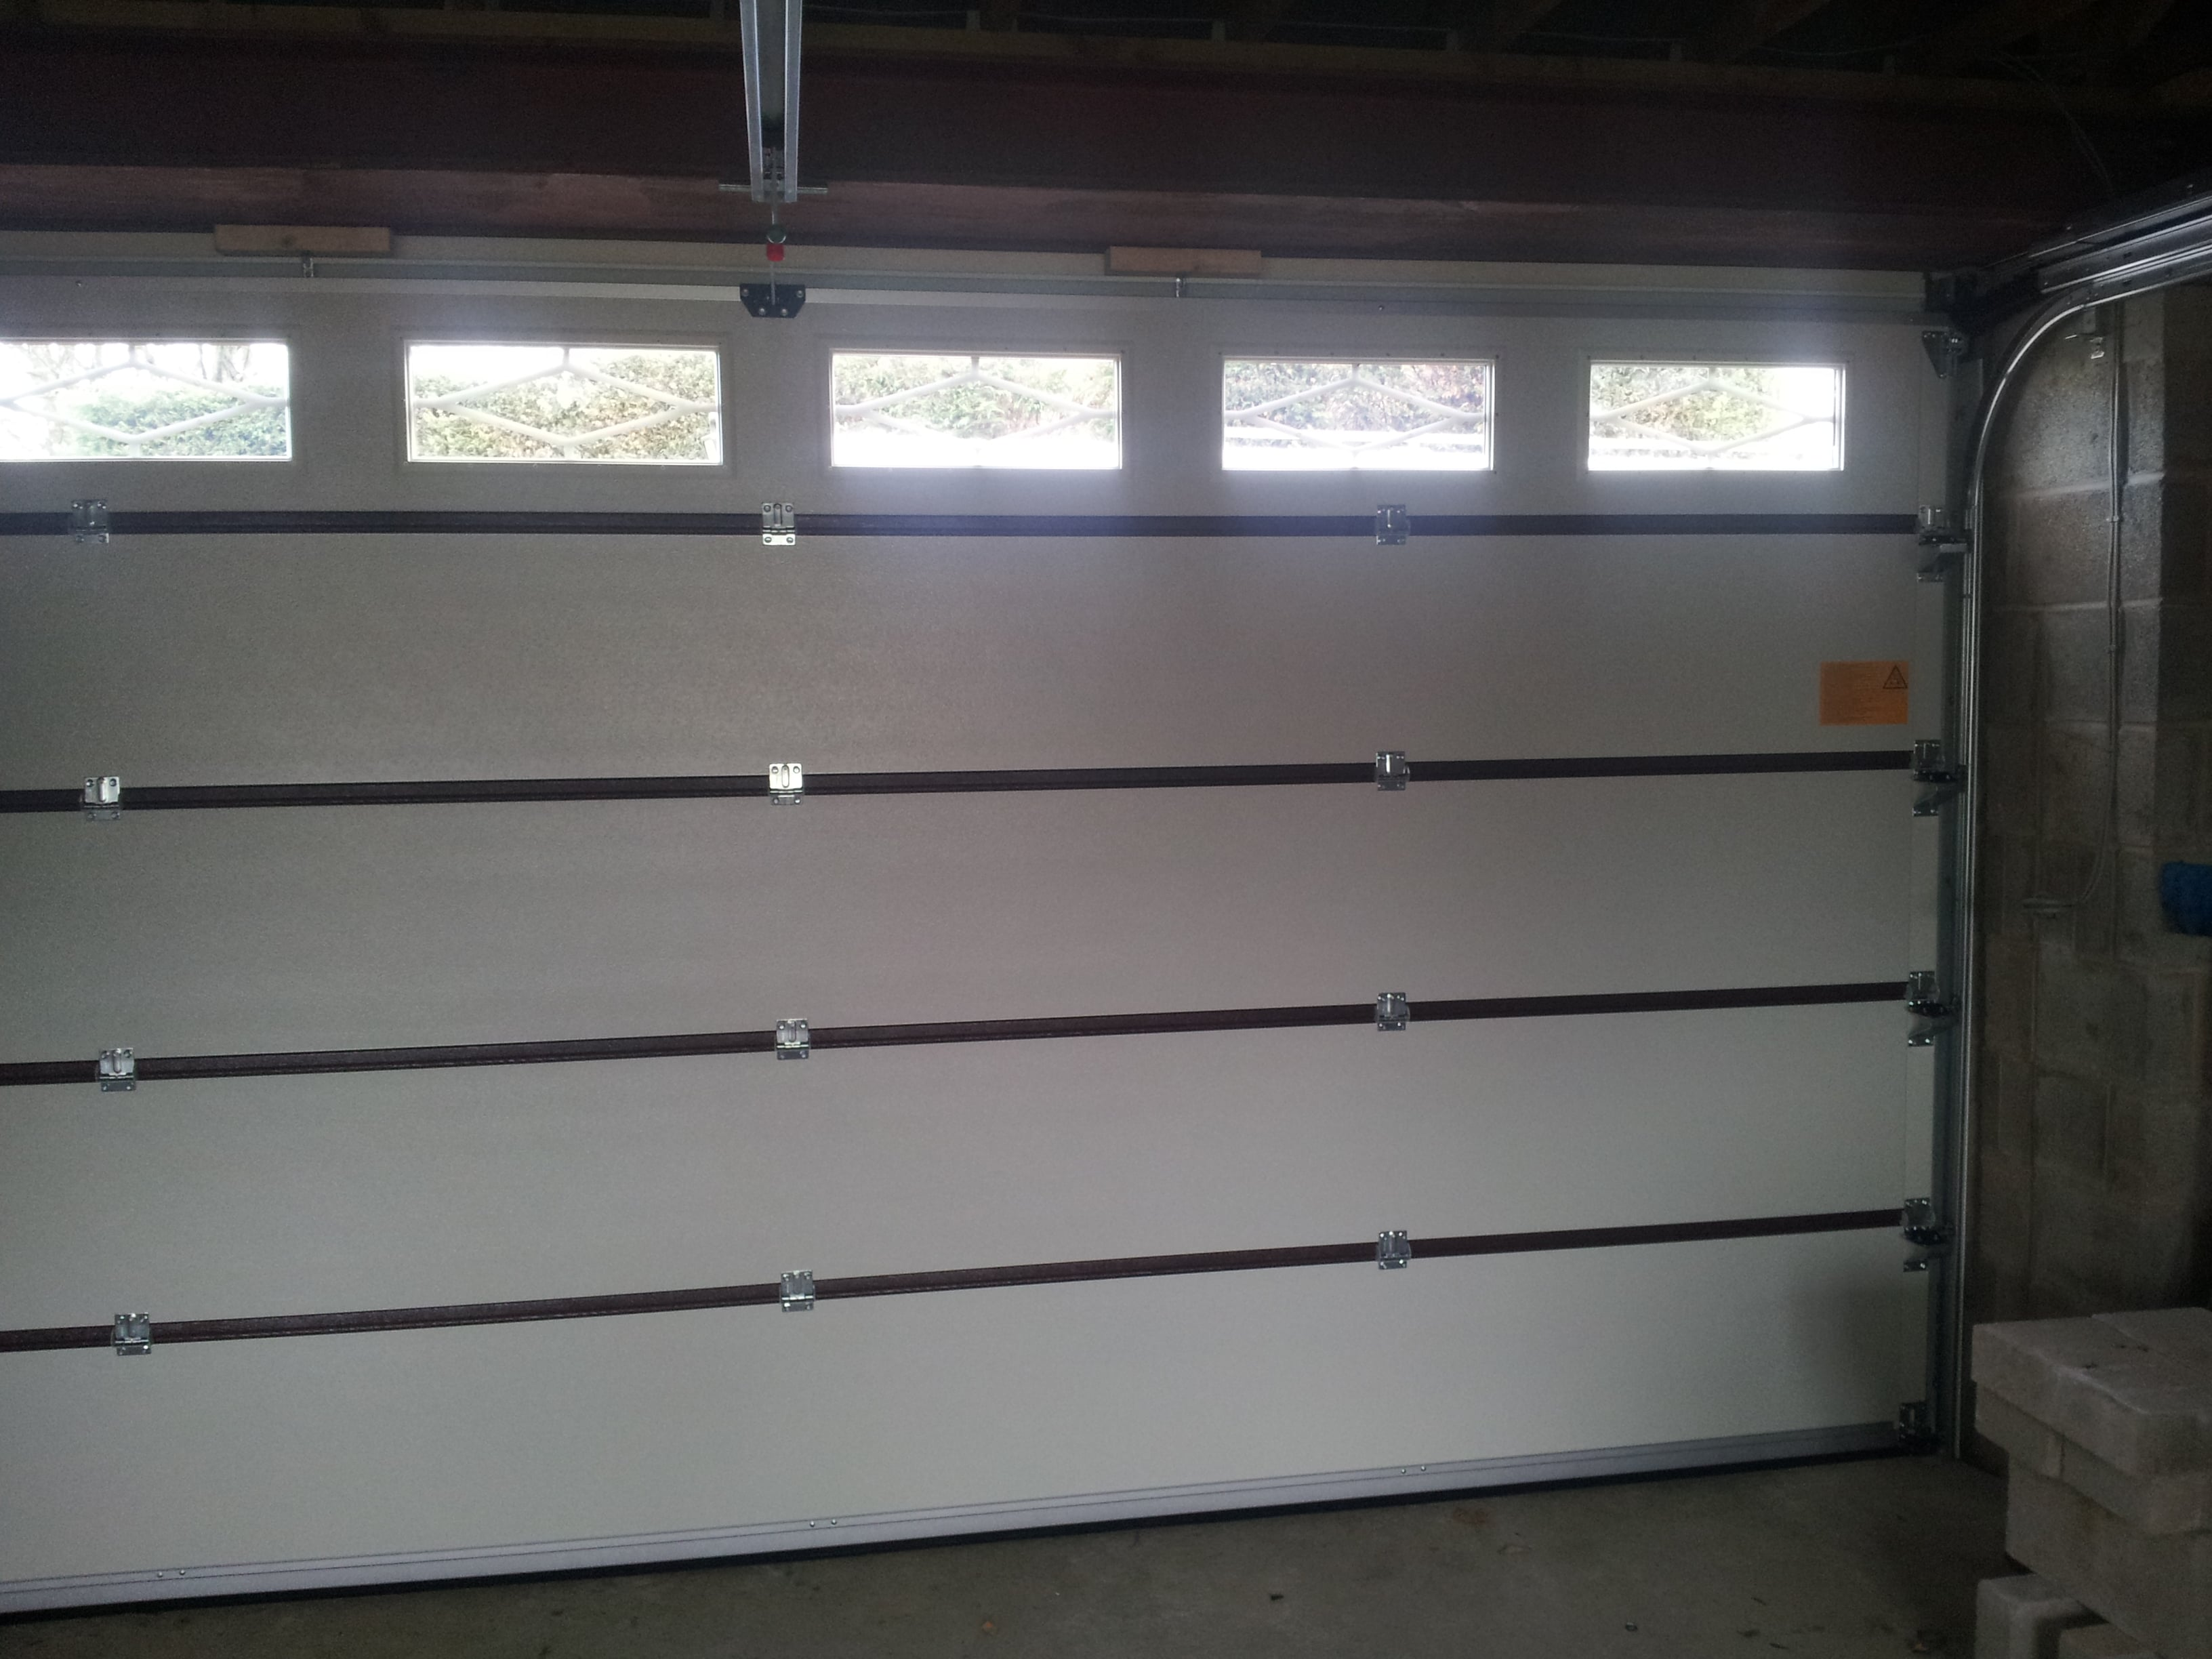 Teckentrup sectional garage door earby door services for How wide is a garage door